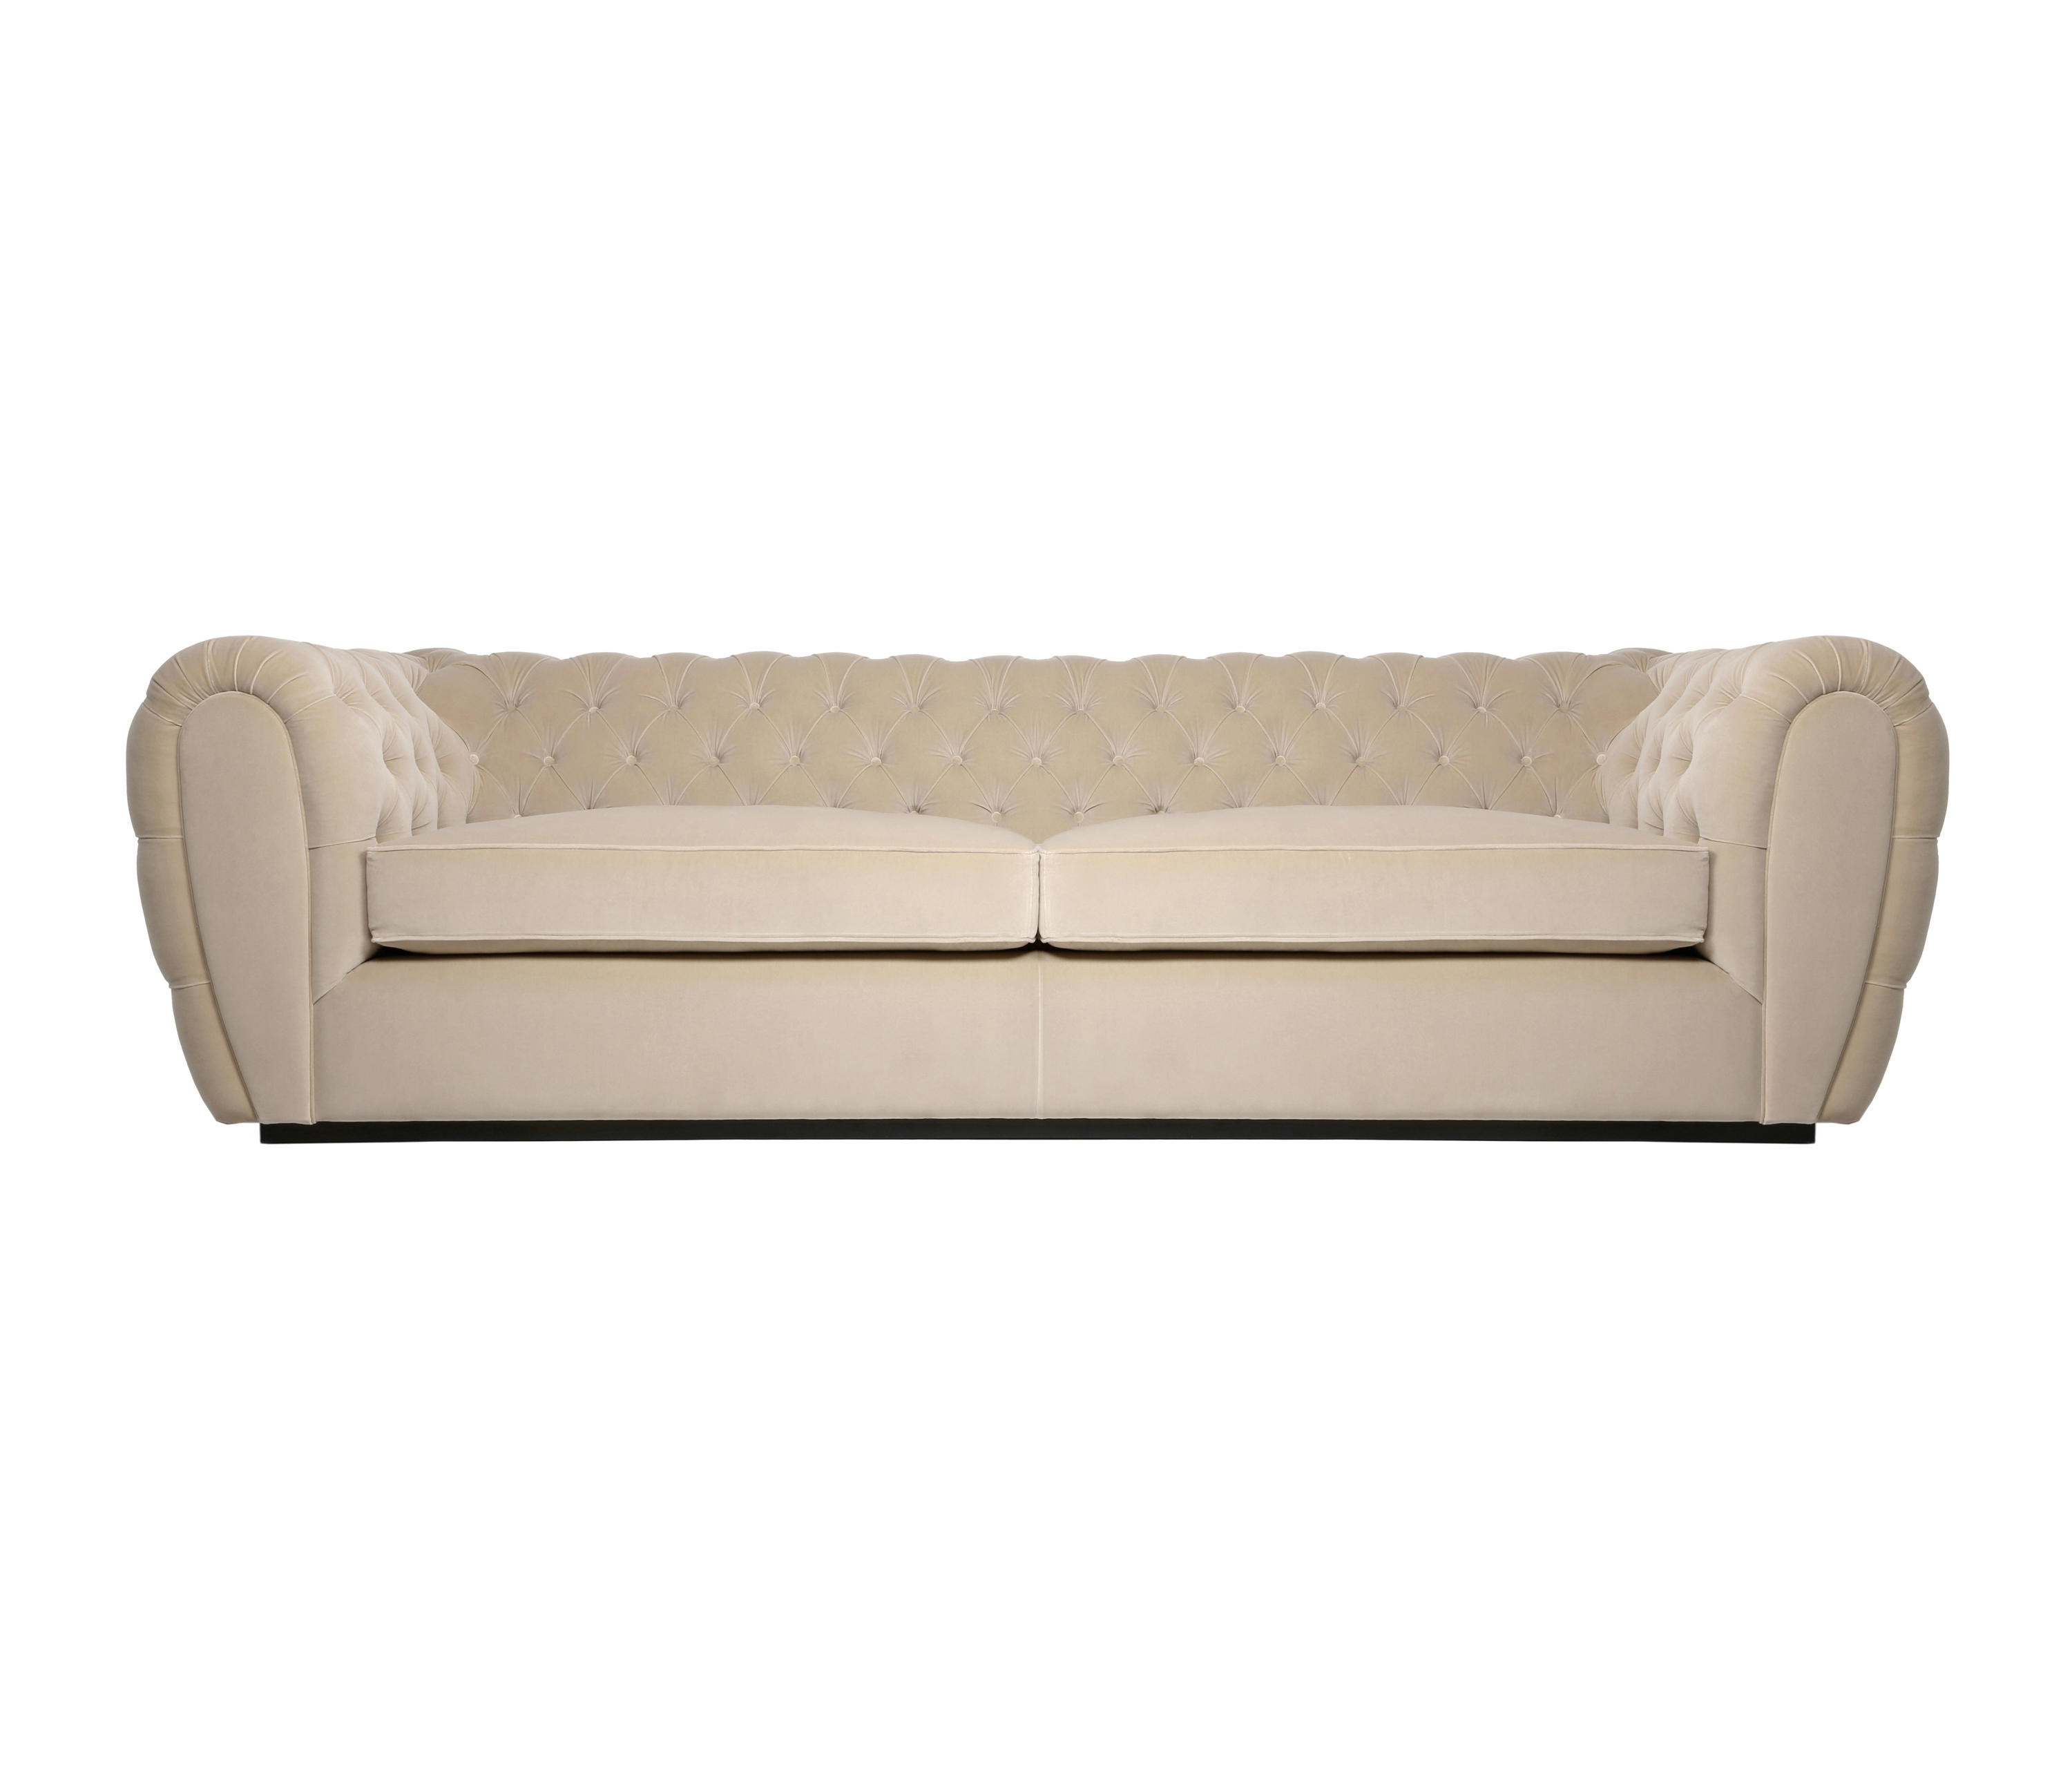 WINDSOR SOFA Lounge sofas from The Sofa & Chair pany Ltd